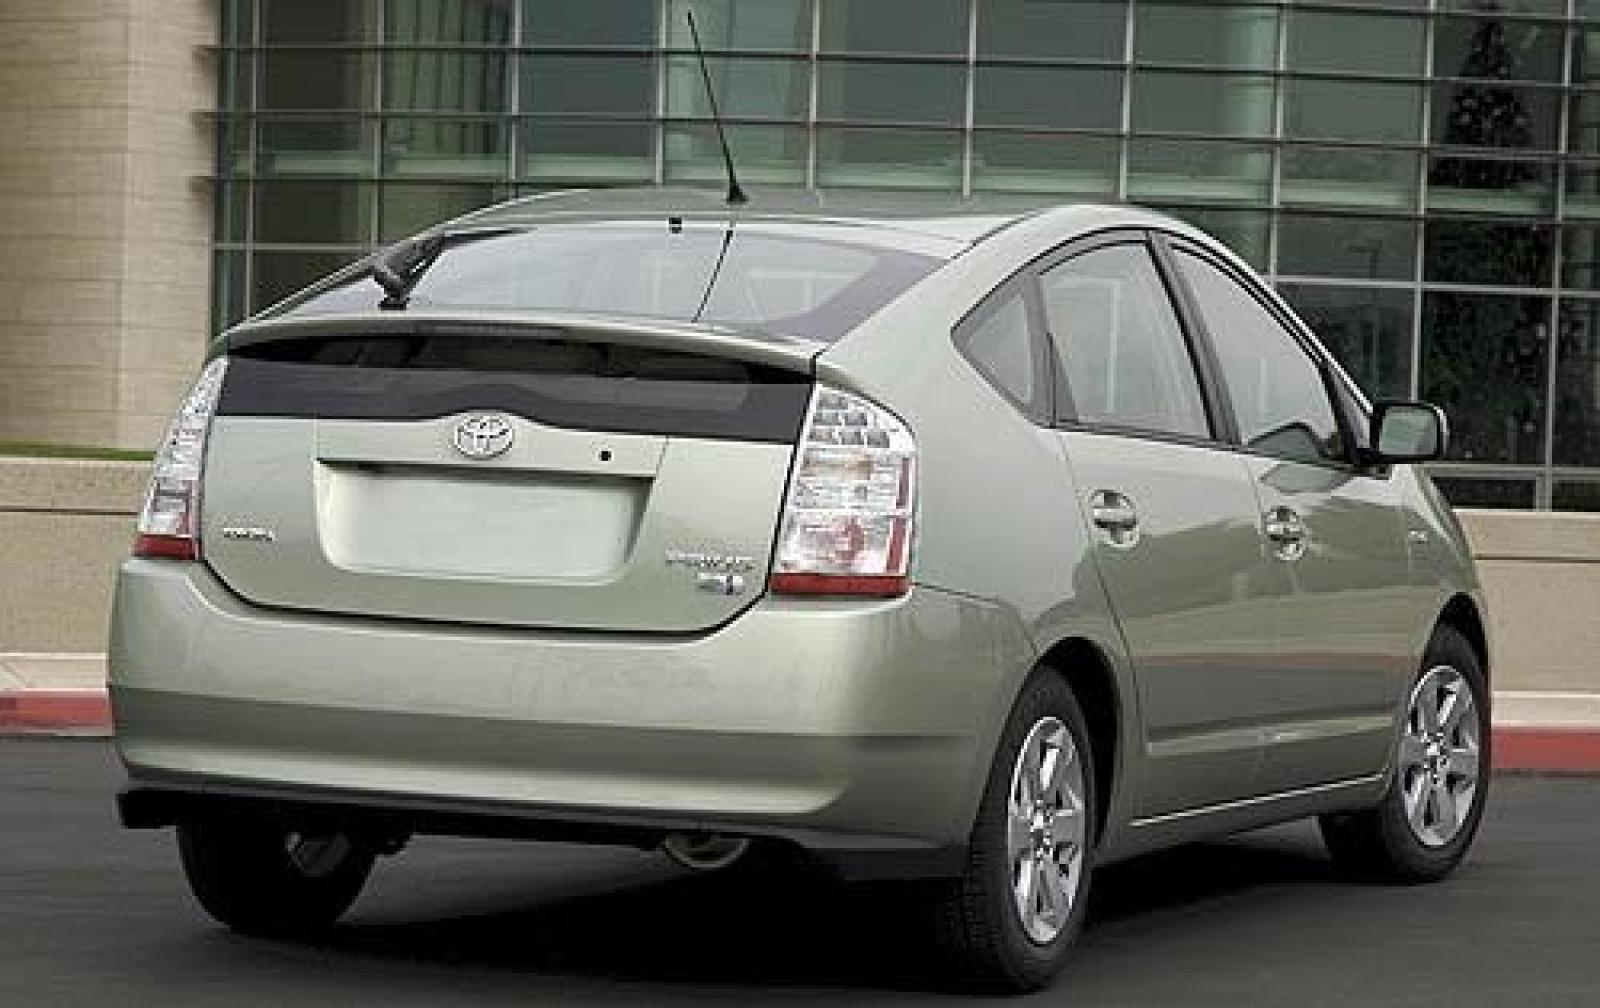 2009 toyota prius information and photos zombiedrive. Black Bedroom Furniture Sets. Home Design Ideas